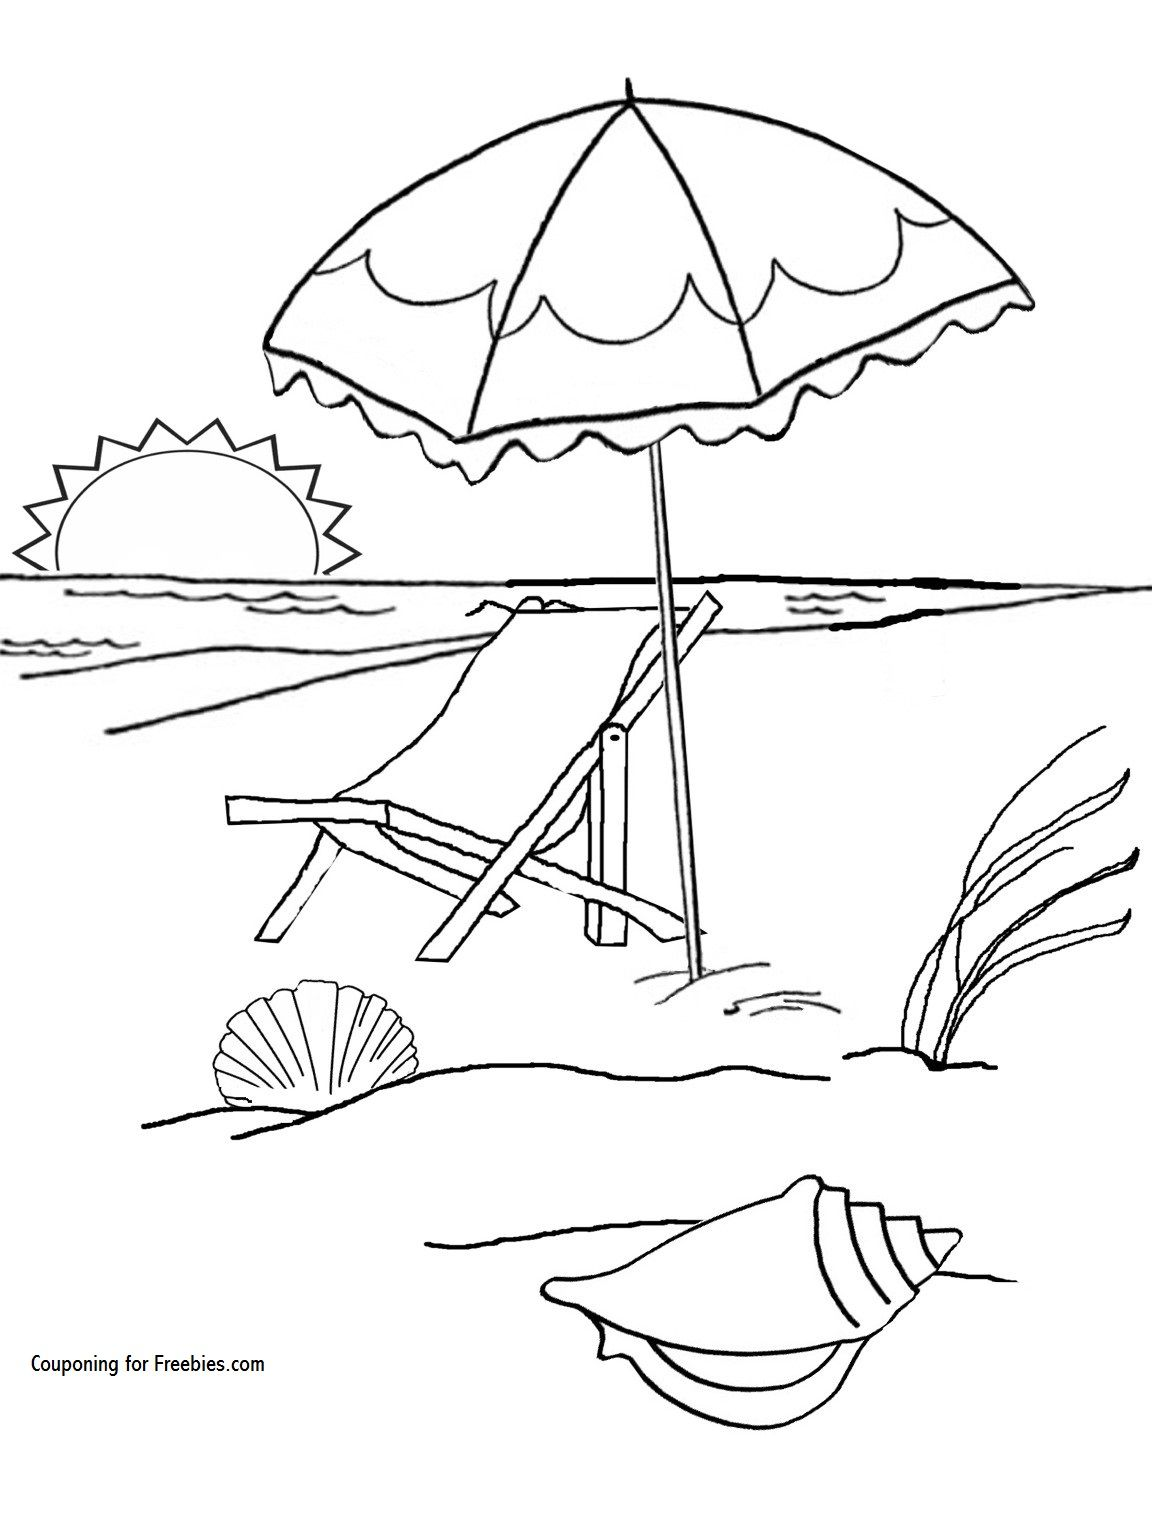 Summer coloring pages for middle school - Free Summer At The Beach Coloring Page Http Couponingforfreebies Com